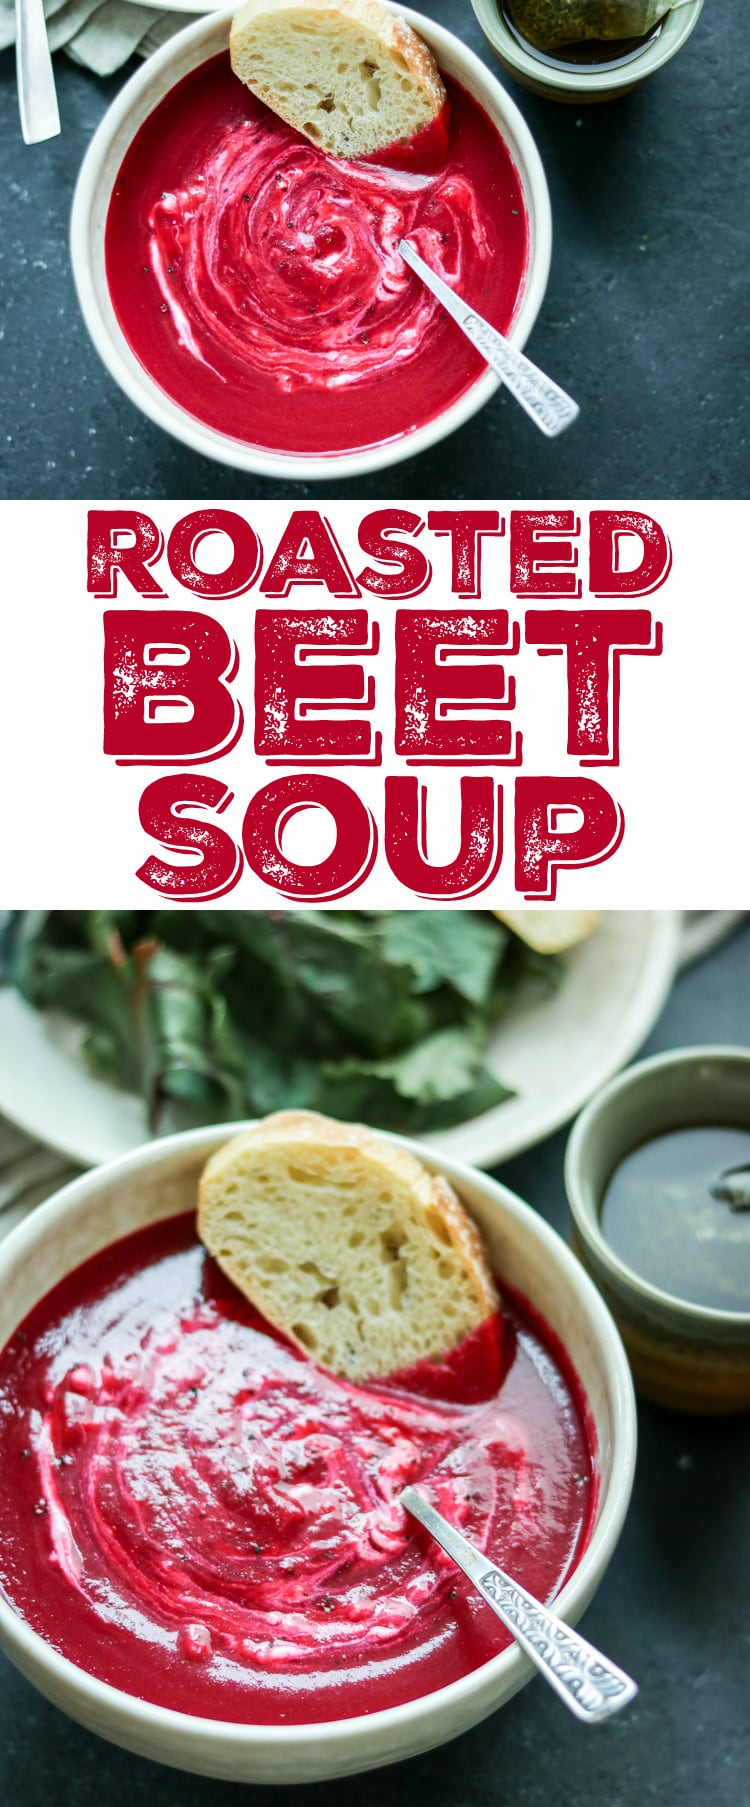 Roasted Potato, Cauliflower, and Beet Soup - The ...